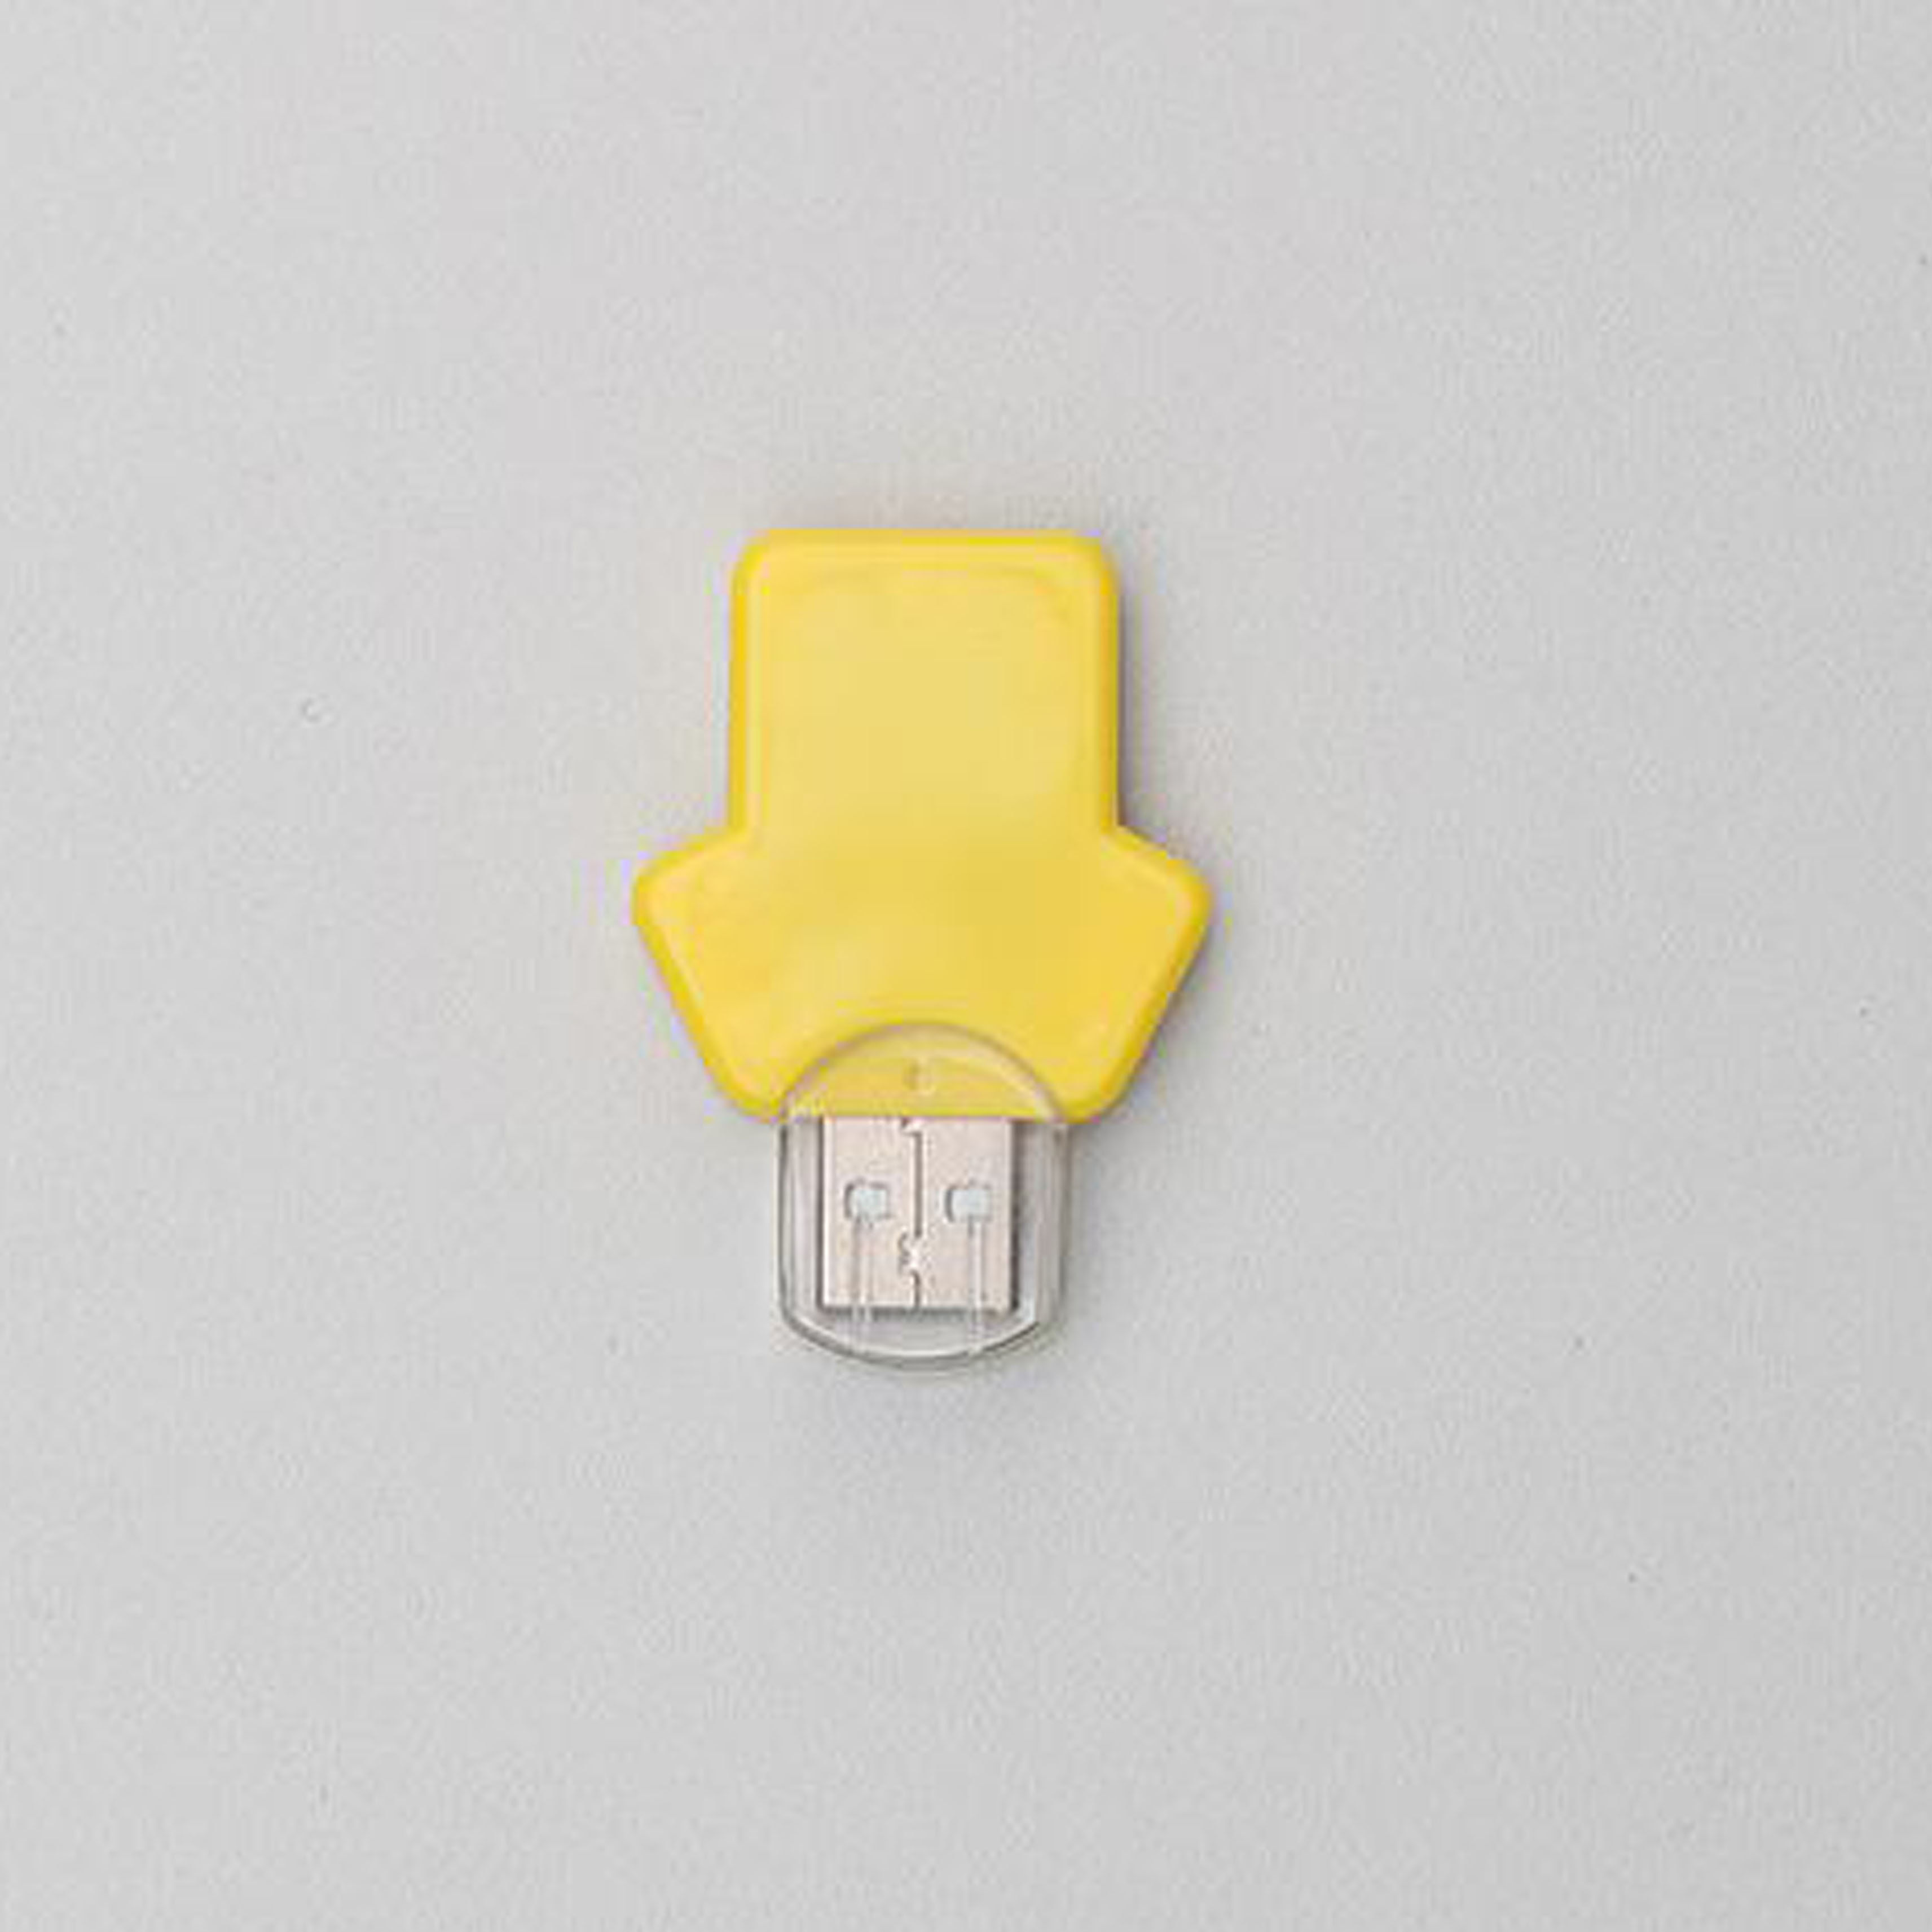 Yellow Cloth Shape USB flash drive